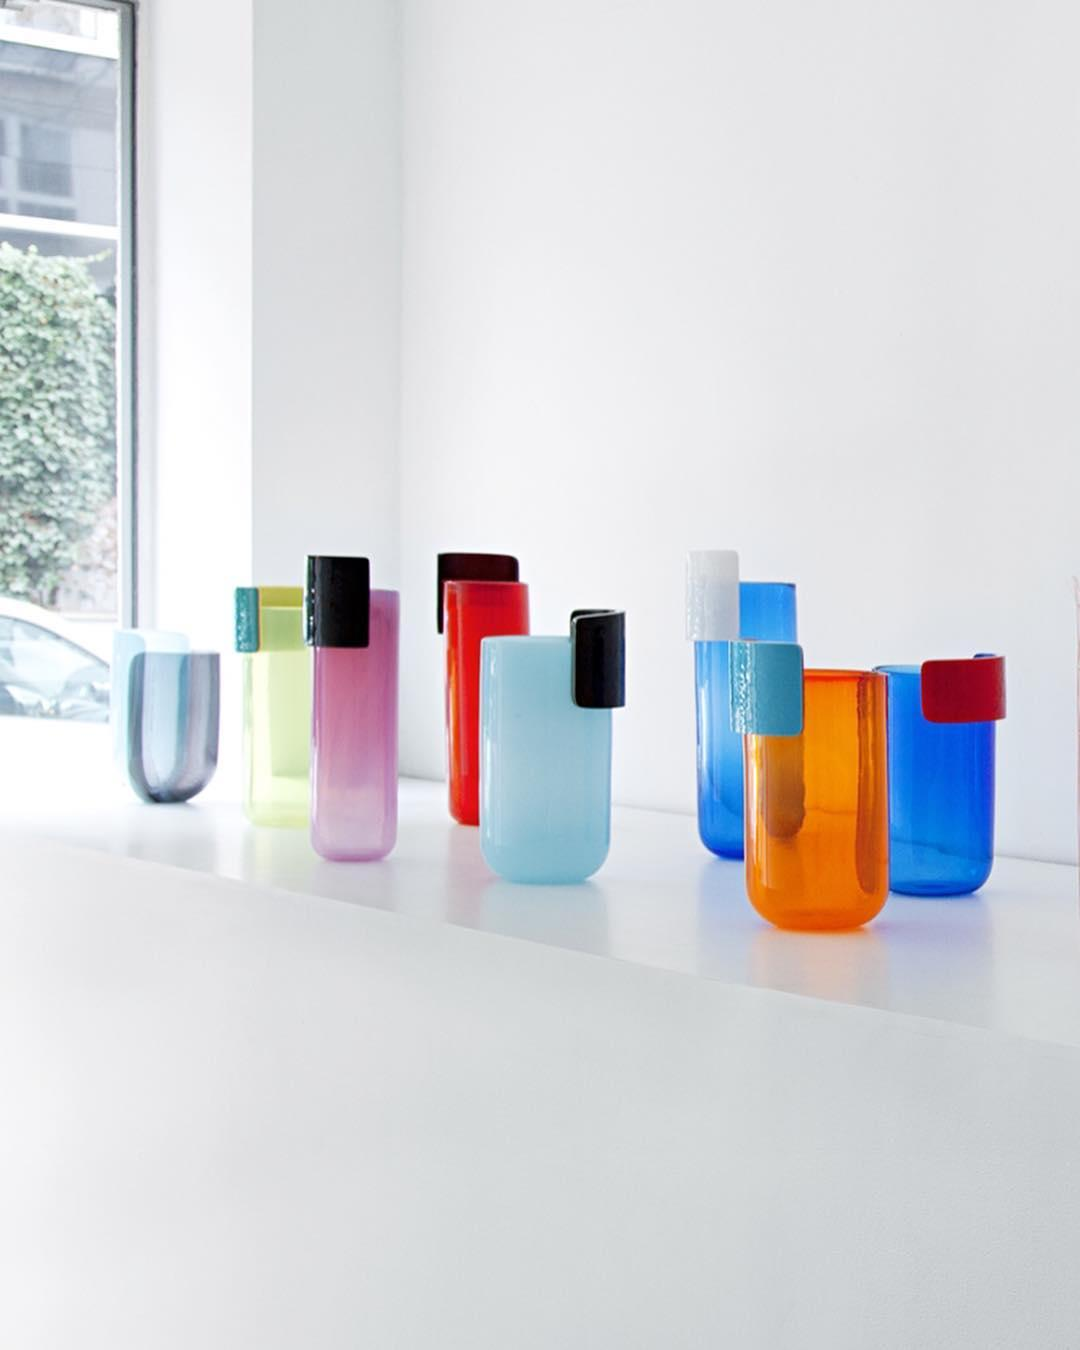 Colourful glass vases by Julie Richoz